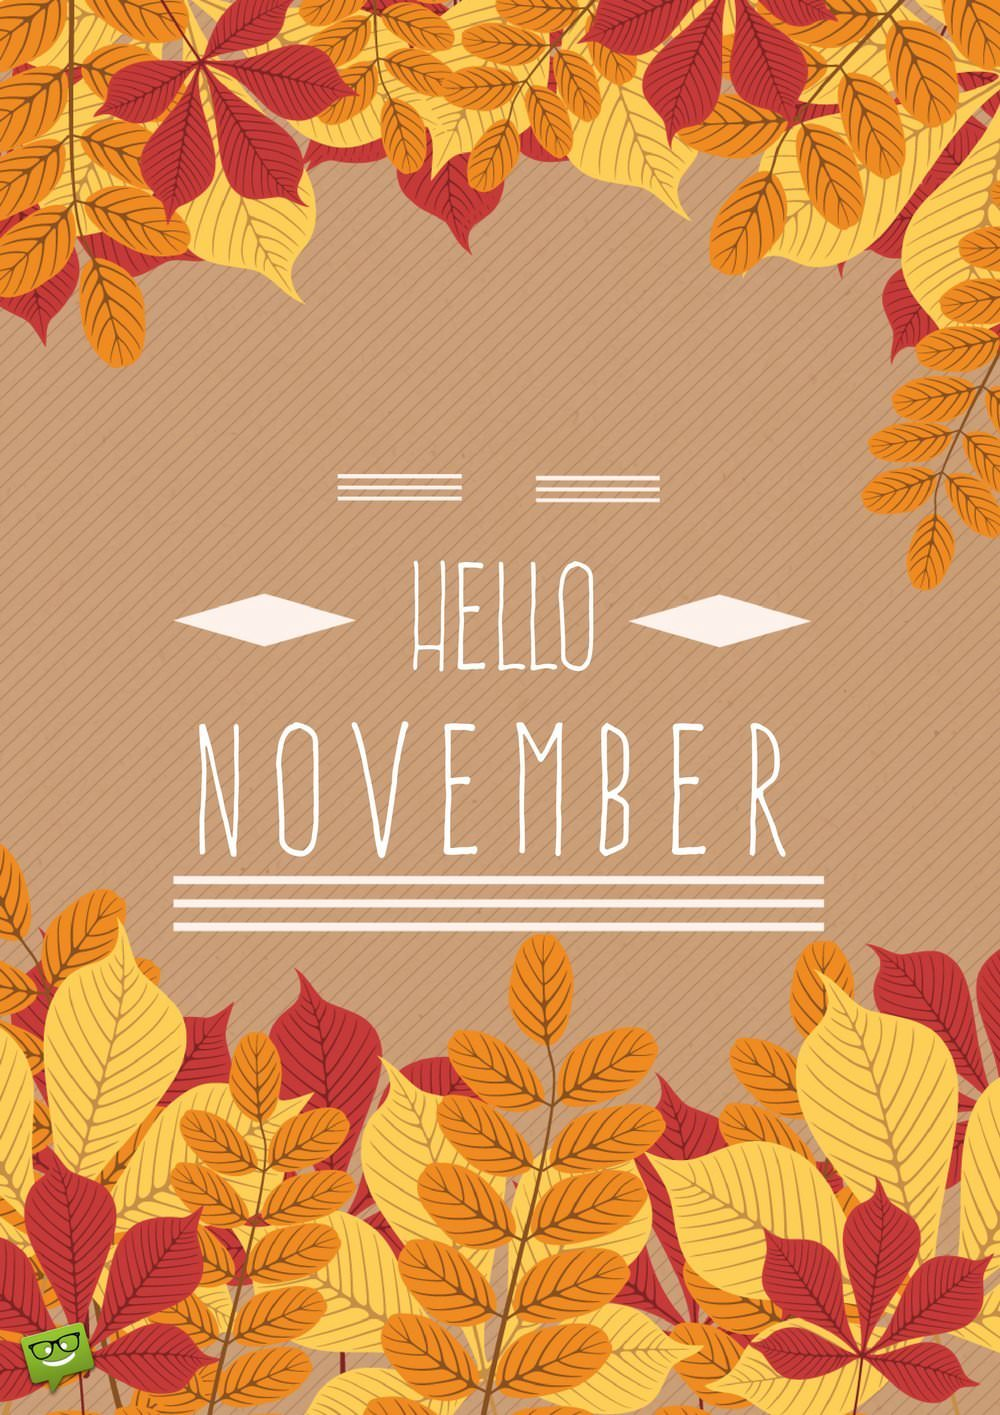 Sweet Cute Wallpapers For Desktop Hello November Quotes For The Month Of Gratitude